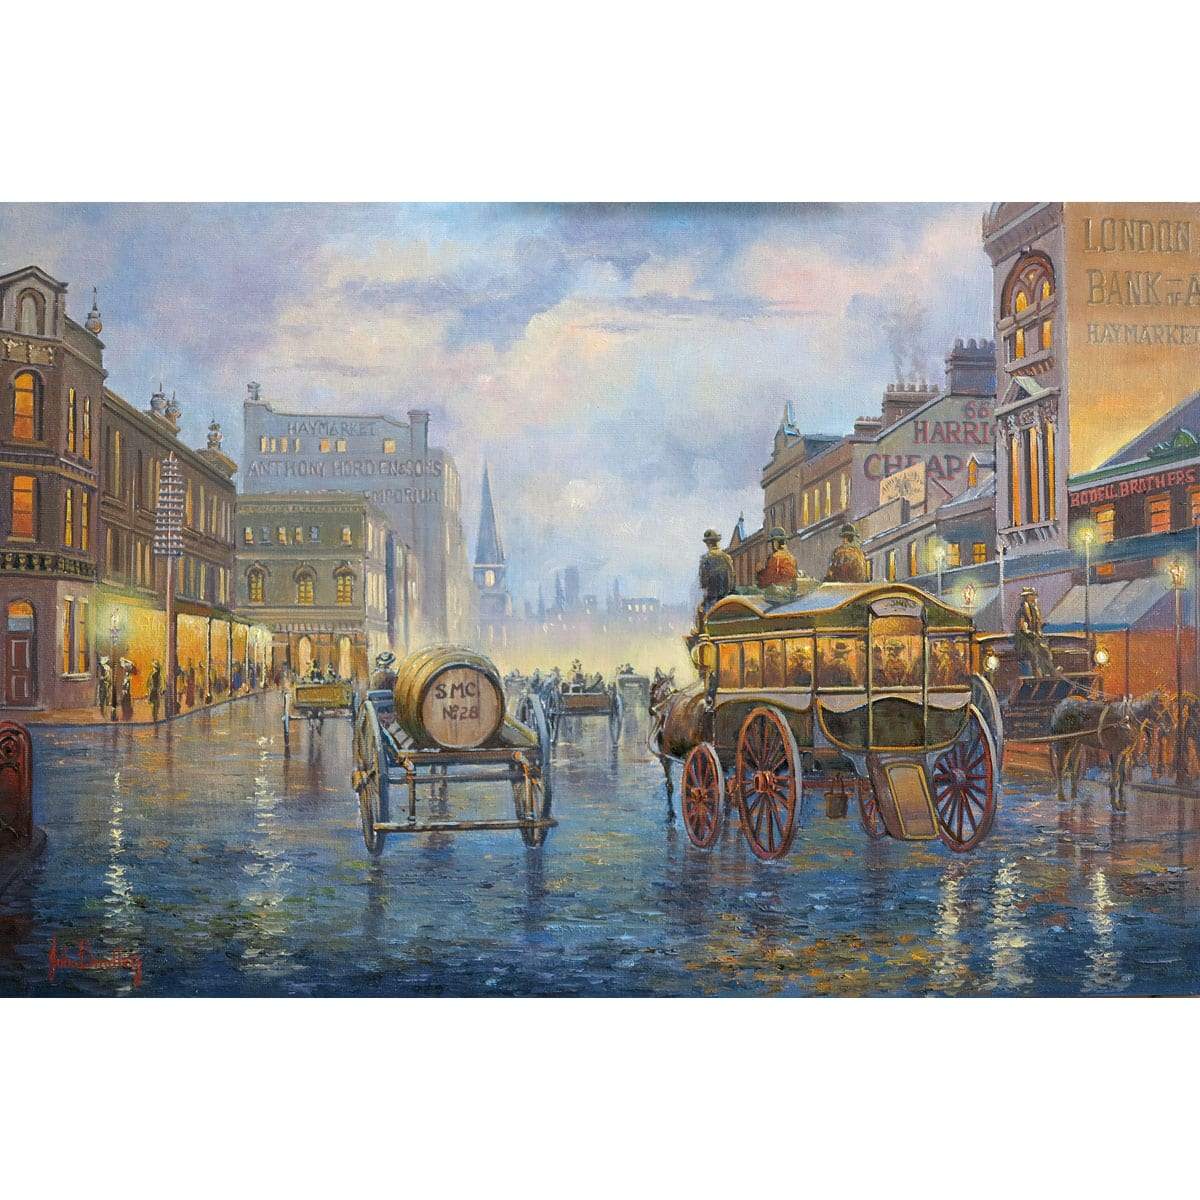 City Lights Painting by John Bradley